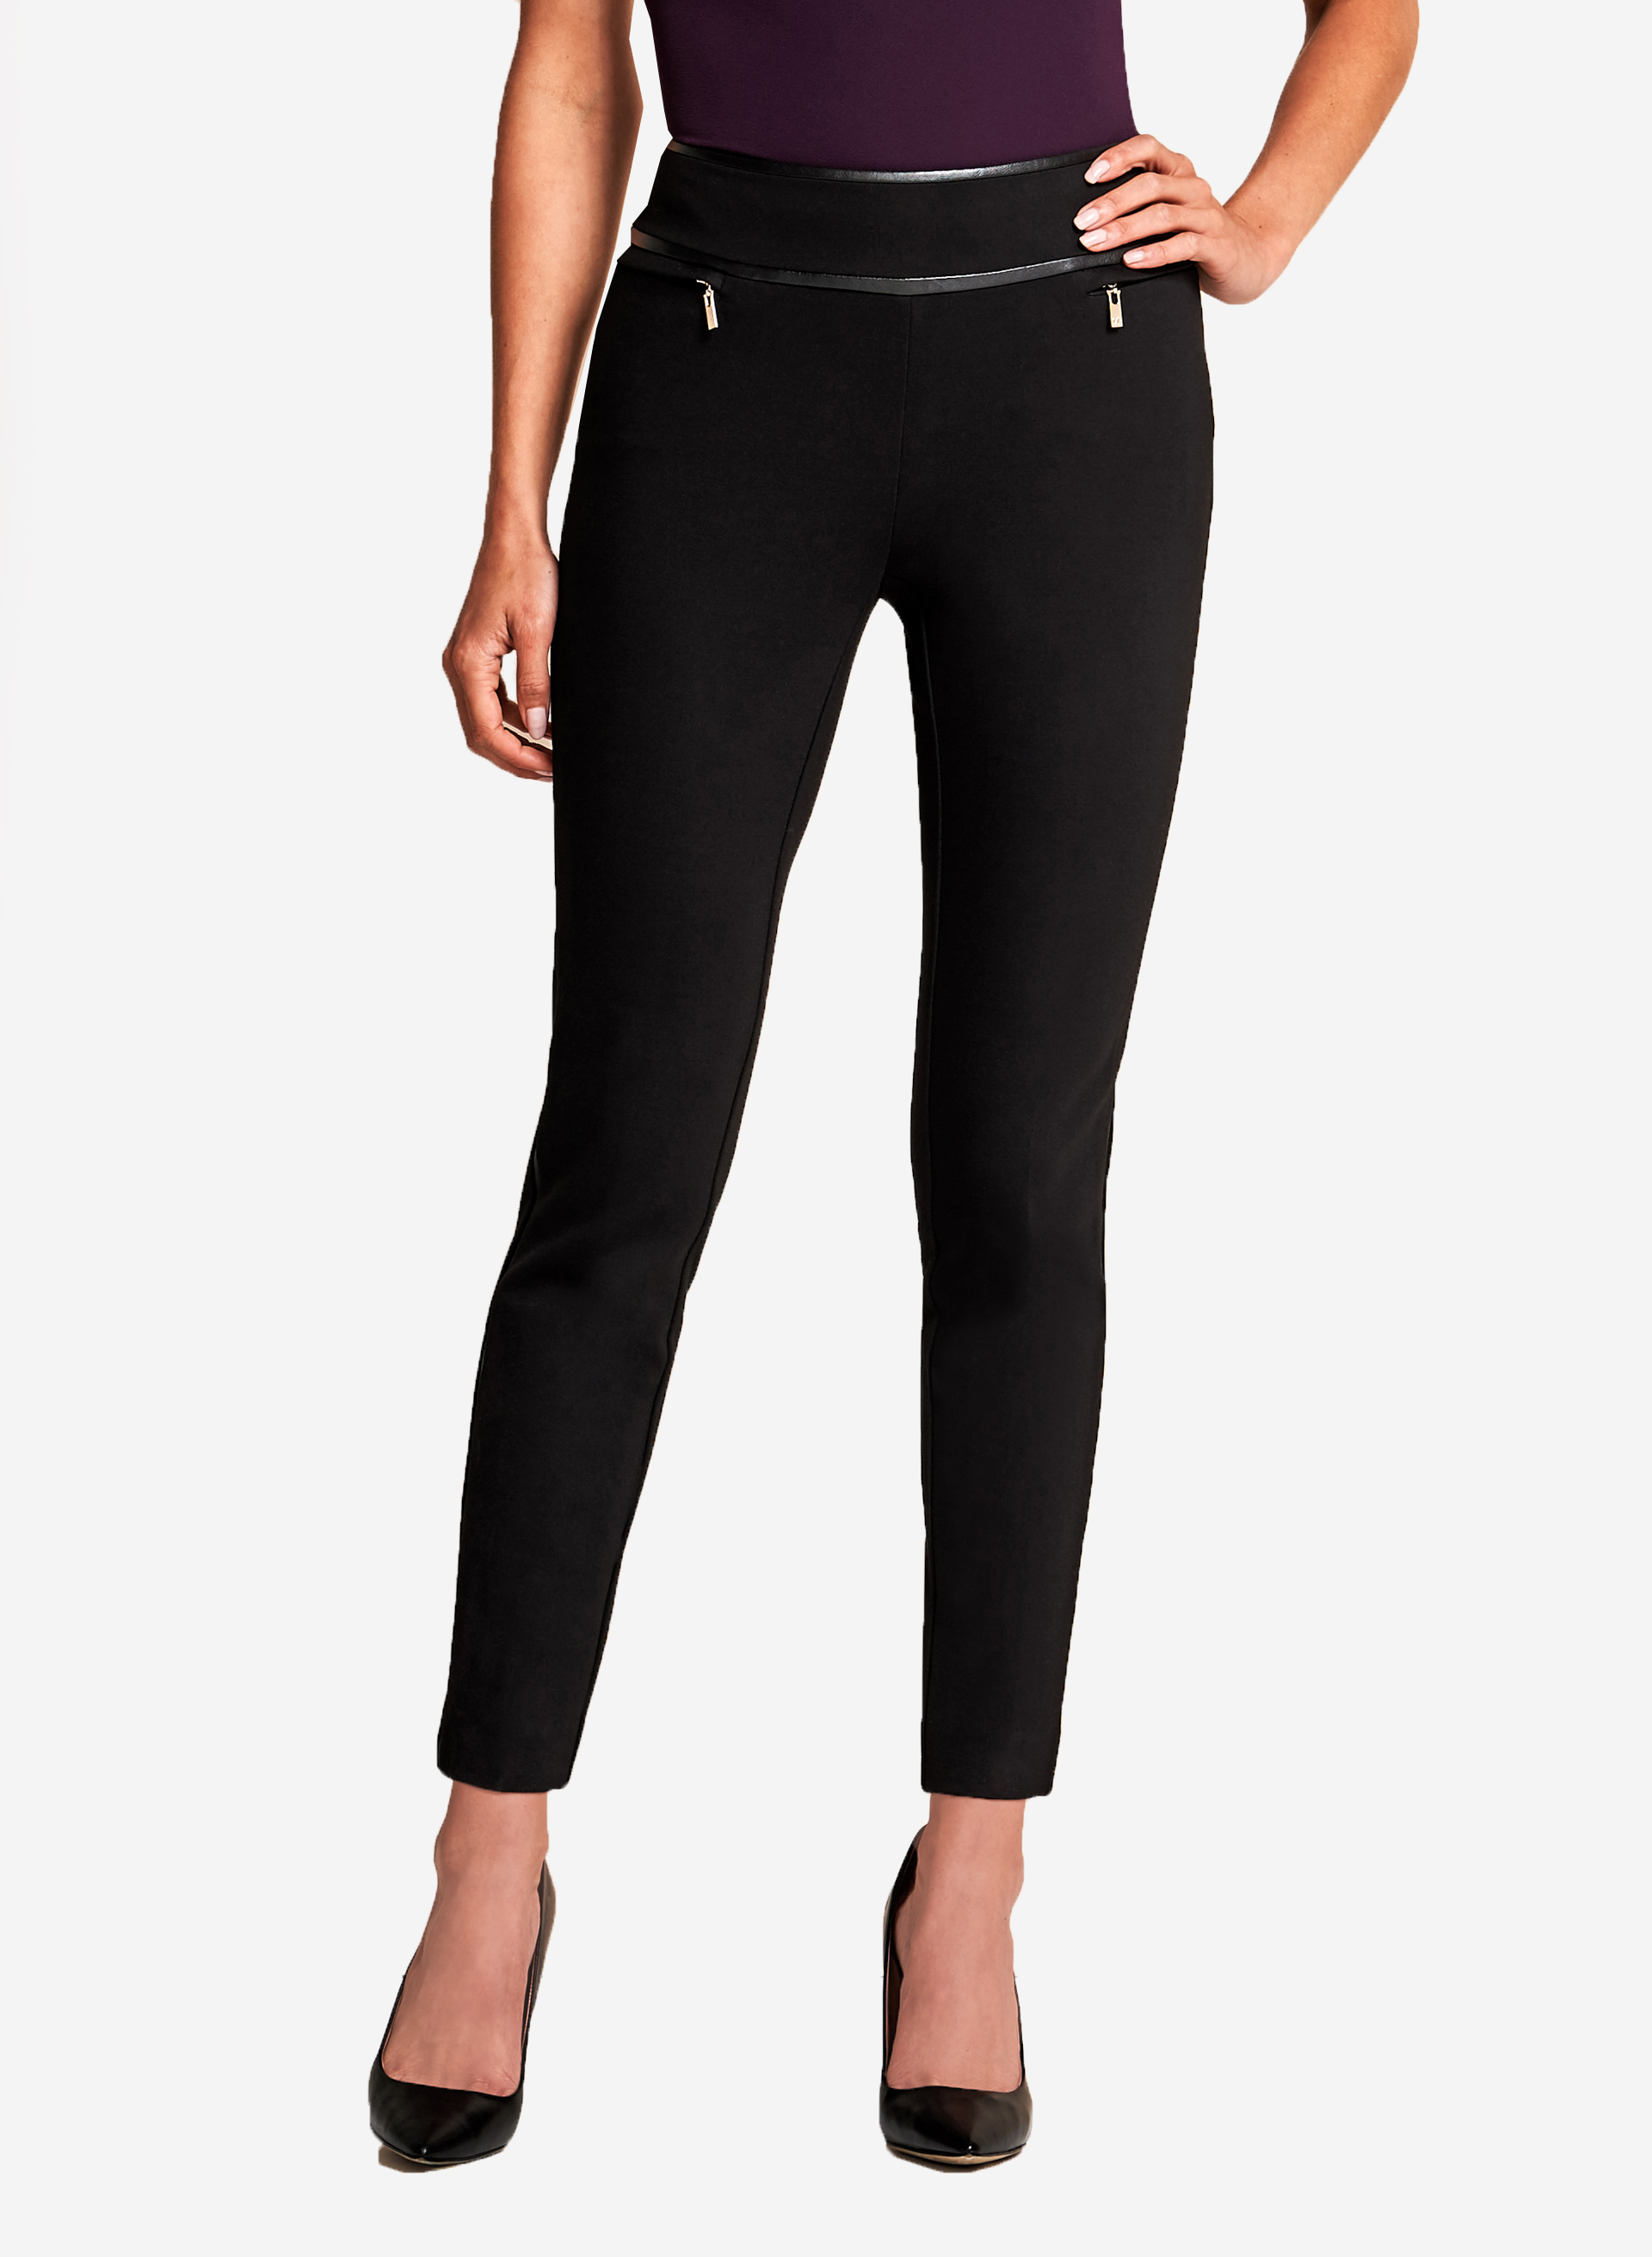 Slimming & Body Shaping Leggings for Every Woman. One of the best things about butt lifting leggings and tights? When you're wearing them, an additional body shaper is not required to slim and trim your thighs, tummy and legs.